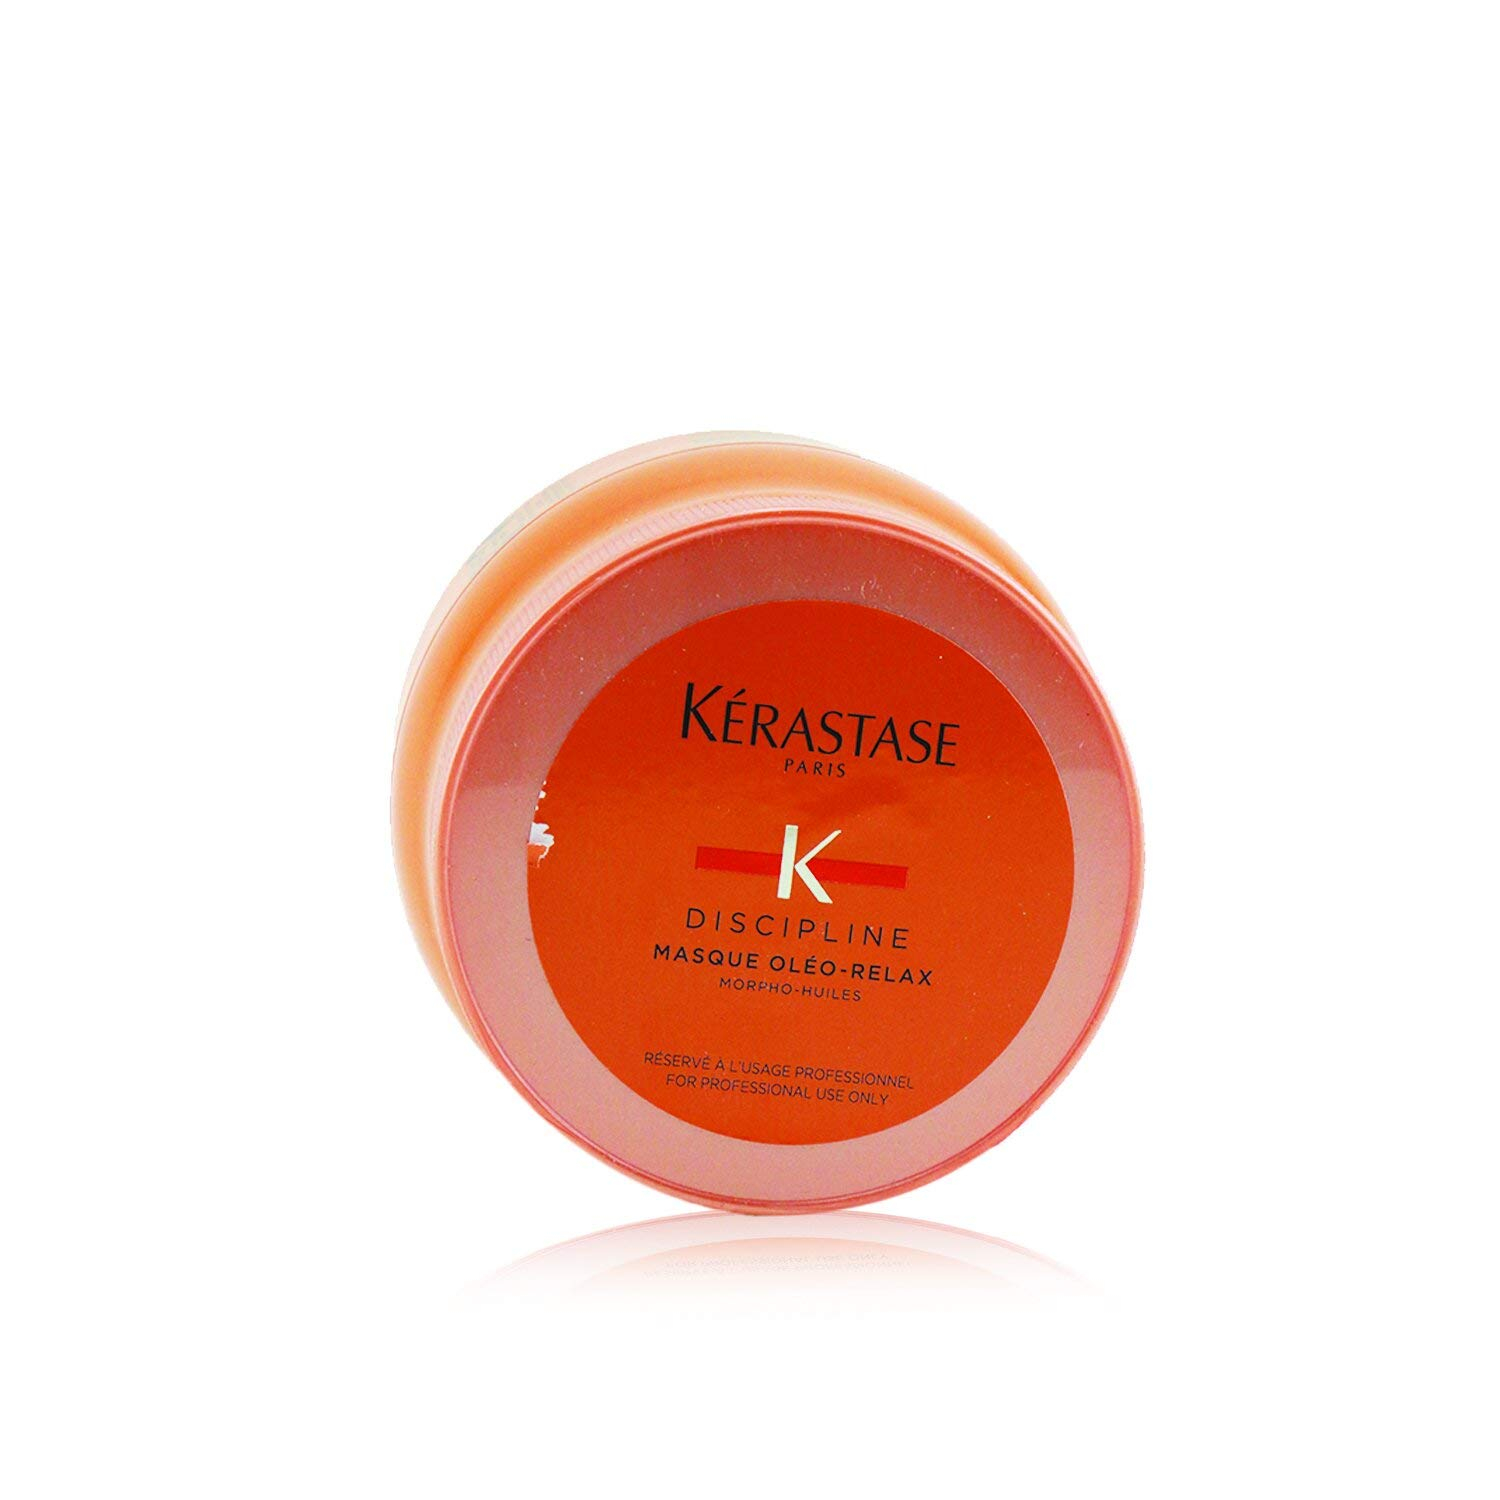 Kerastase Discipline Oléo-Relax Masque, 500 ml, Pack de 1: Amazon.es